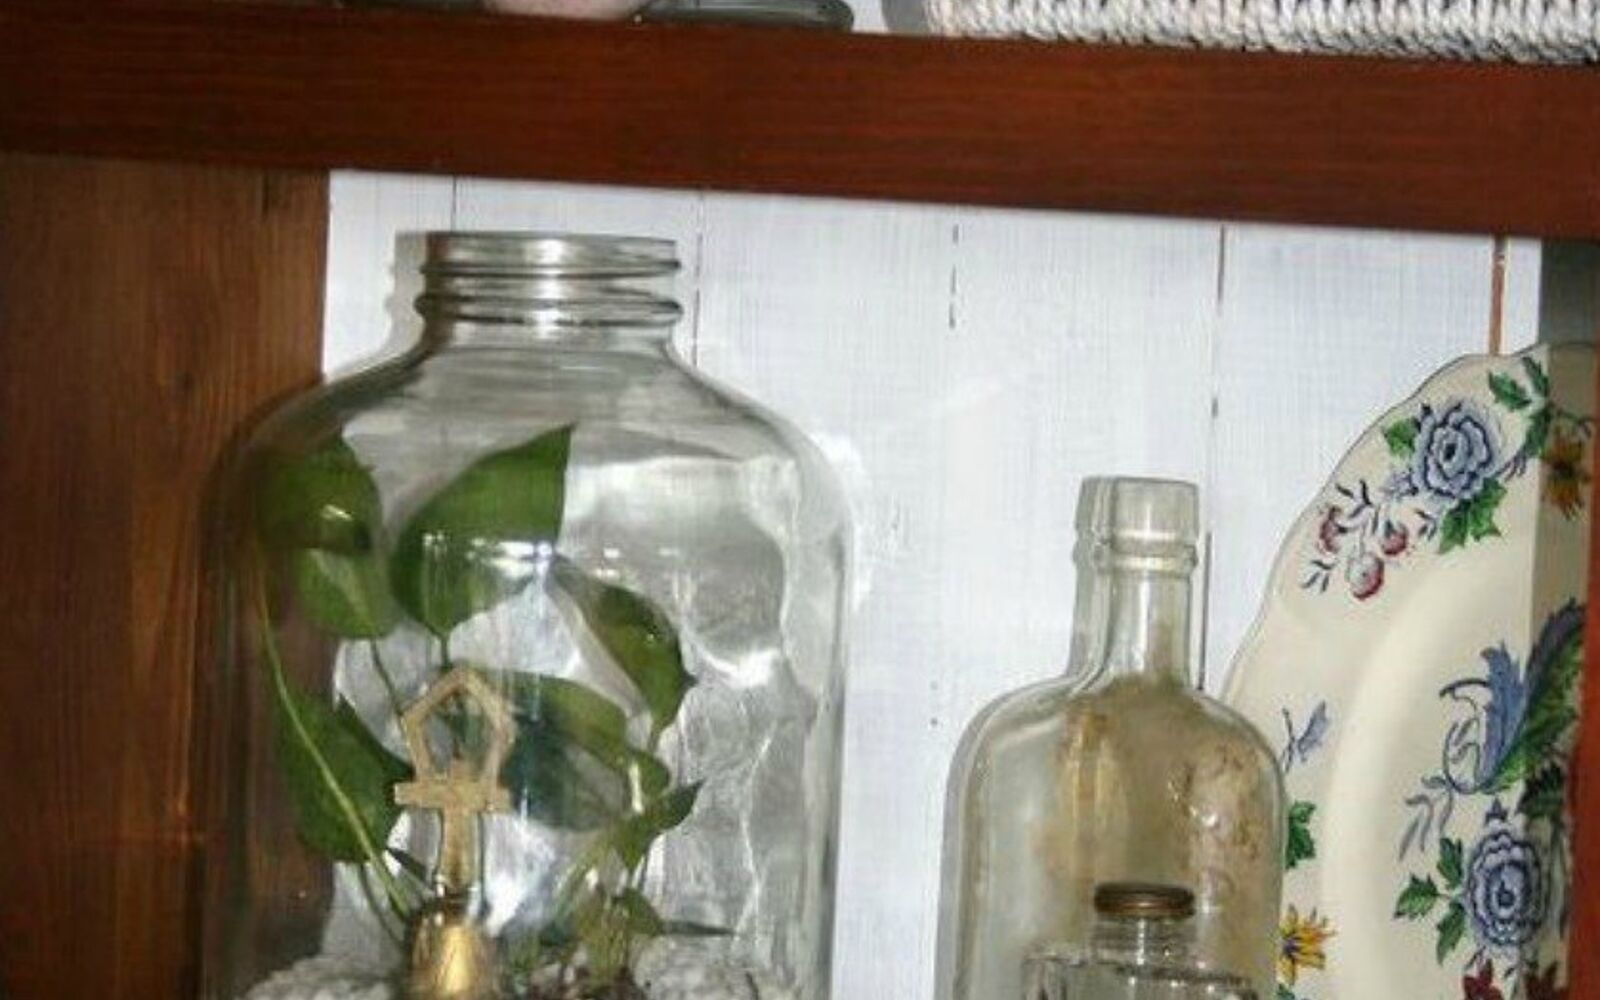 s 21 of the cutest terrariums we ve ever seen, gardening, terrarium, This cute one made in a bottle